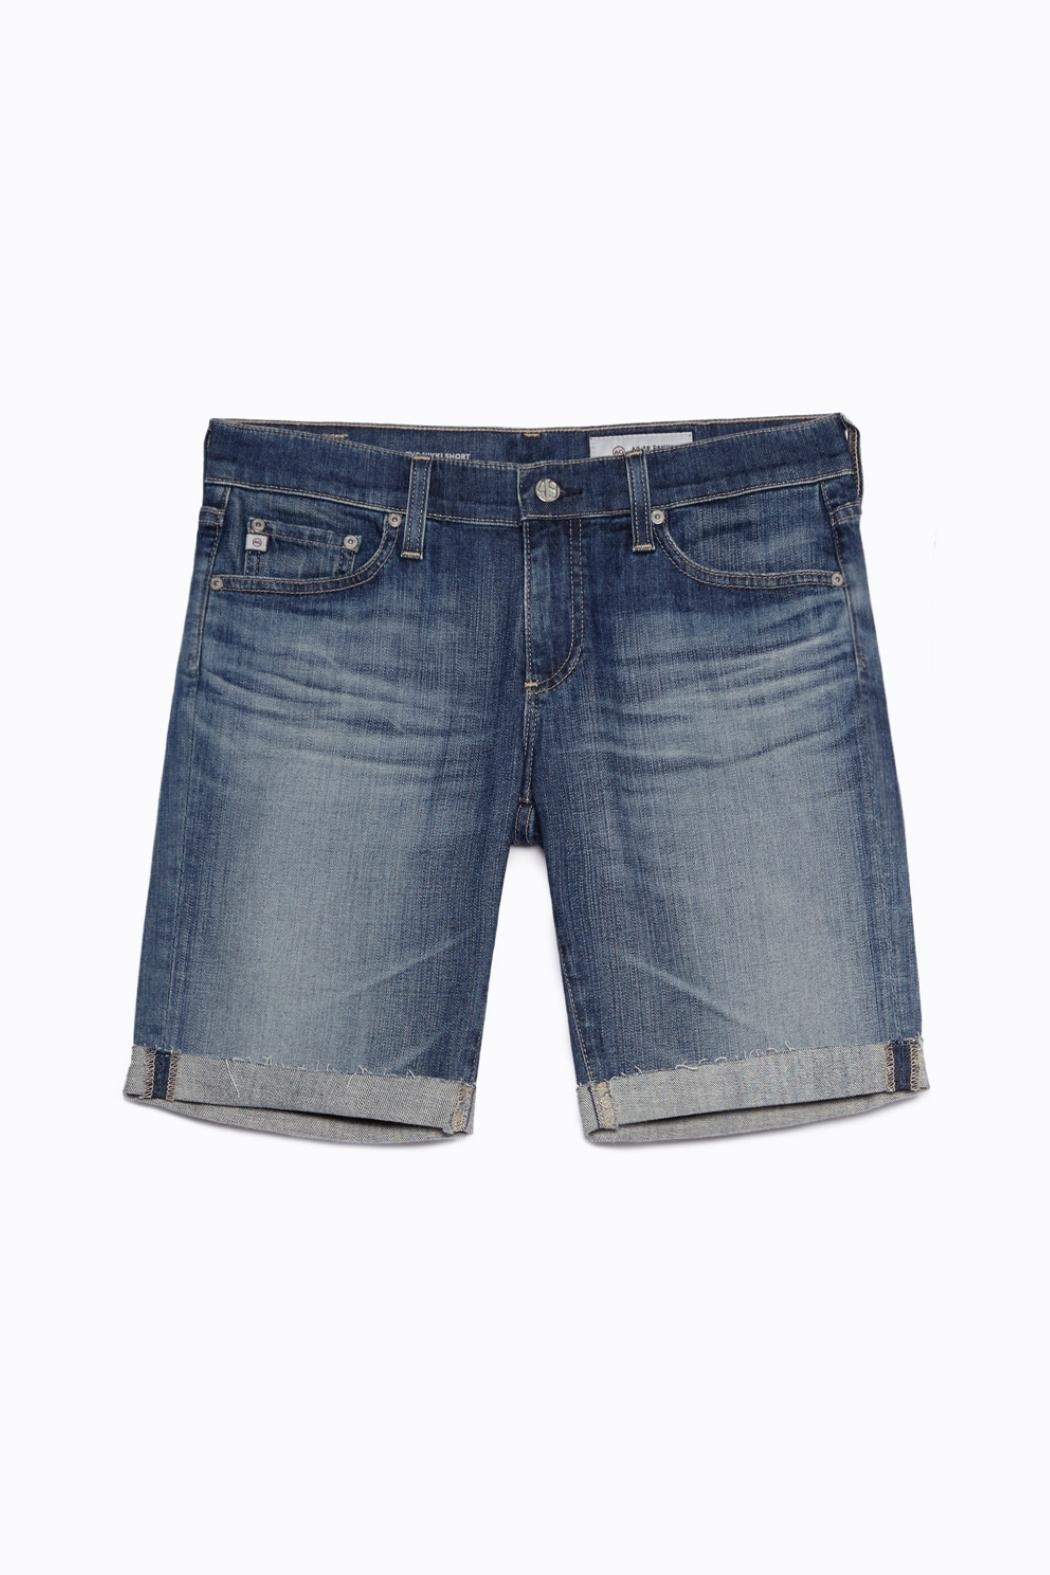 AG Jeans Nikki Shorts - Back Cropped Image